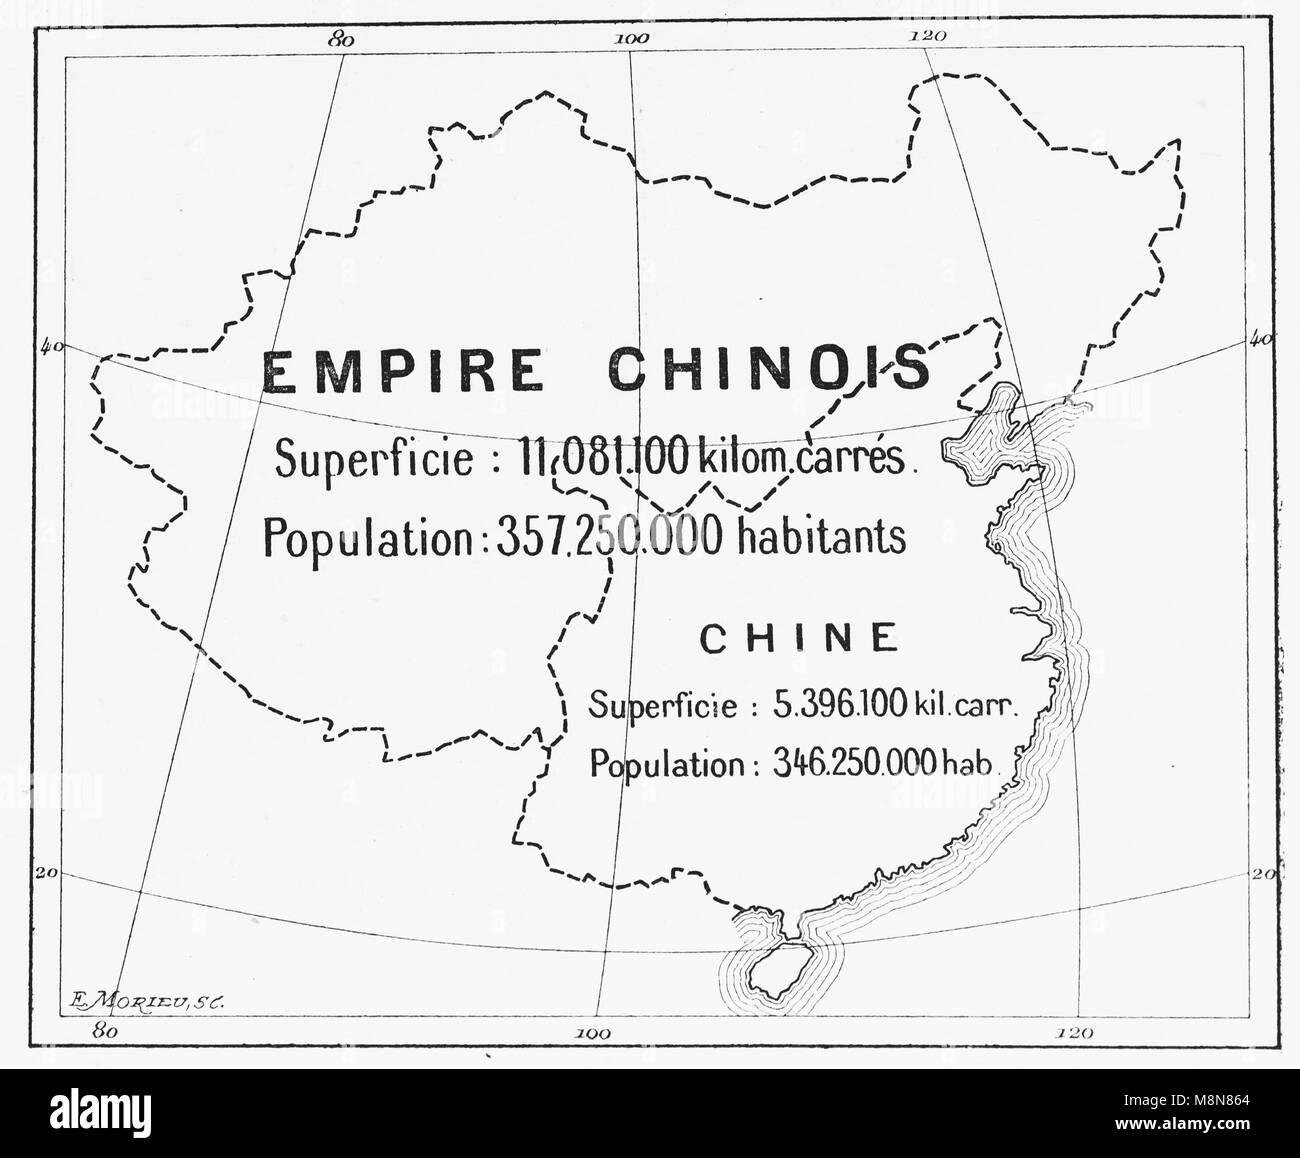 Map of the Chinese Empire in 1900, Picture from the French weekly newspaper l'Illustration, 27th October 1900 - Stock Image